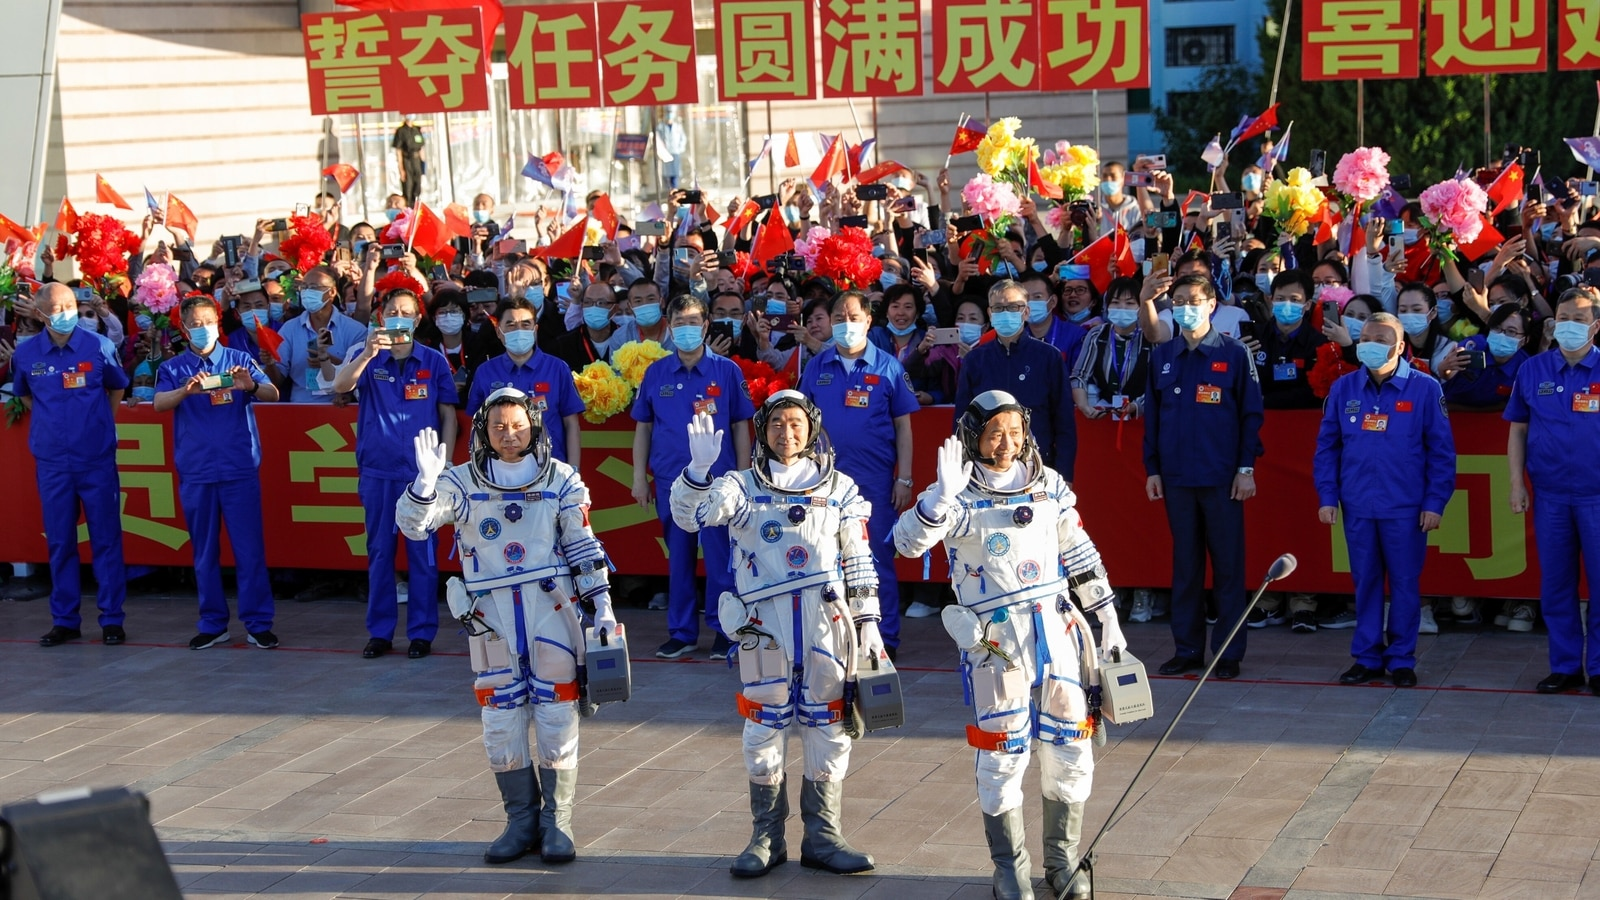 China launches manned space mission: Veteran astronaut, treadmills and more